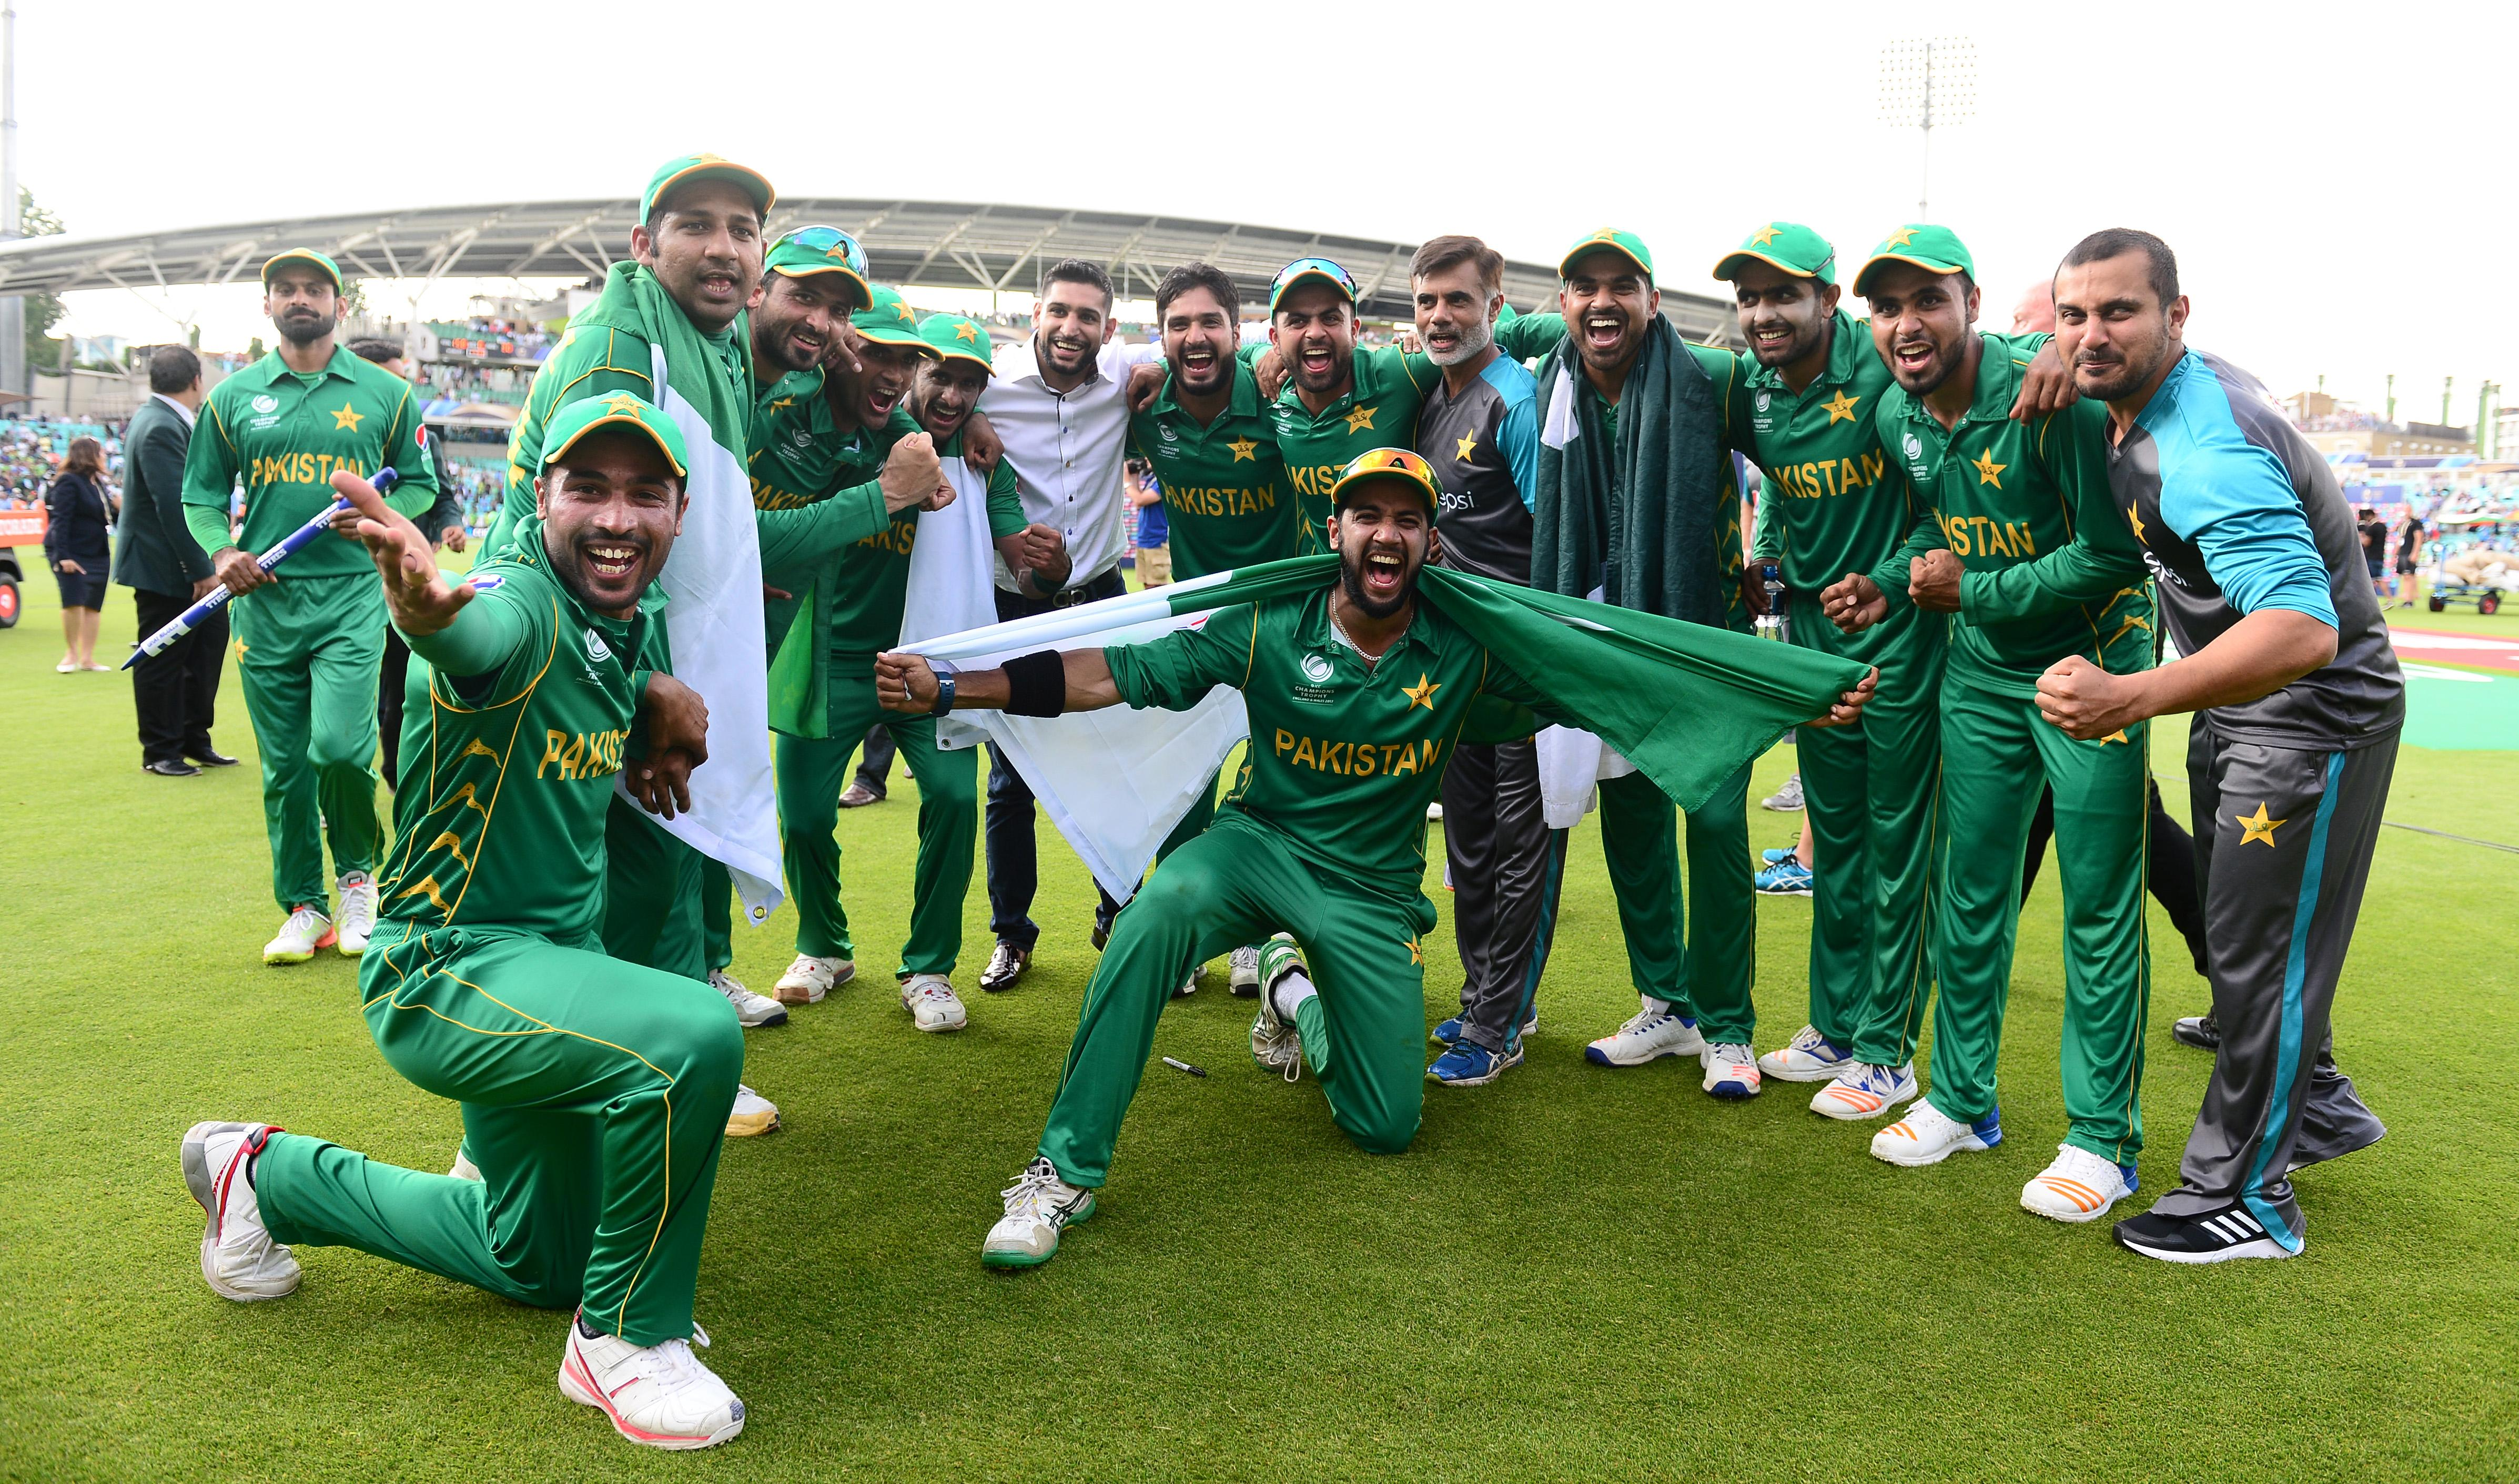 Pakistan S Champions Trophy Victory Is Great For World Cricket